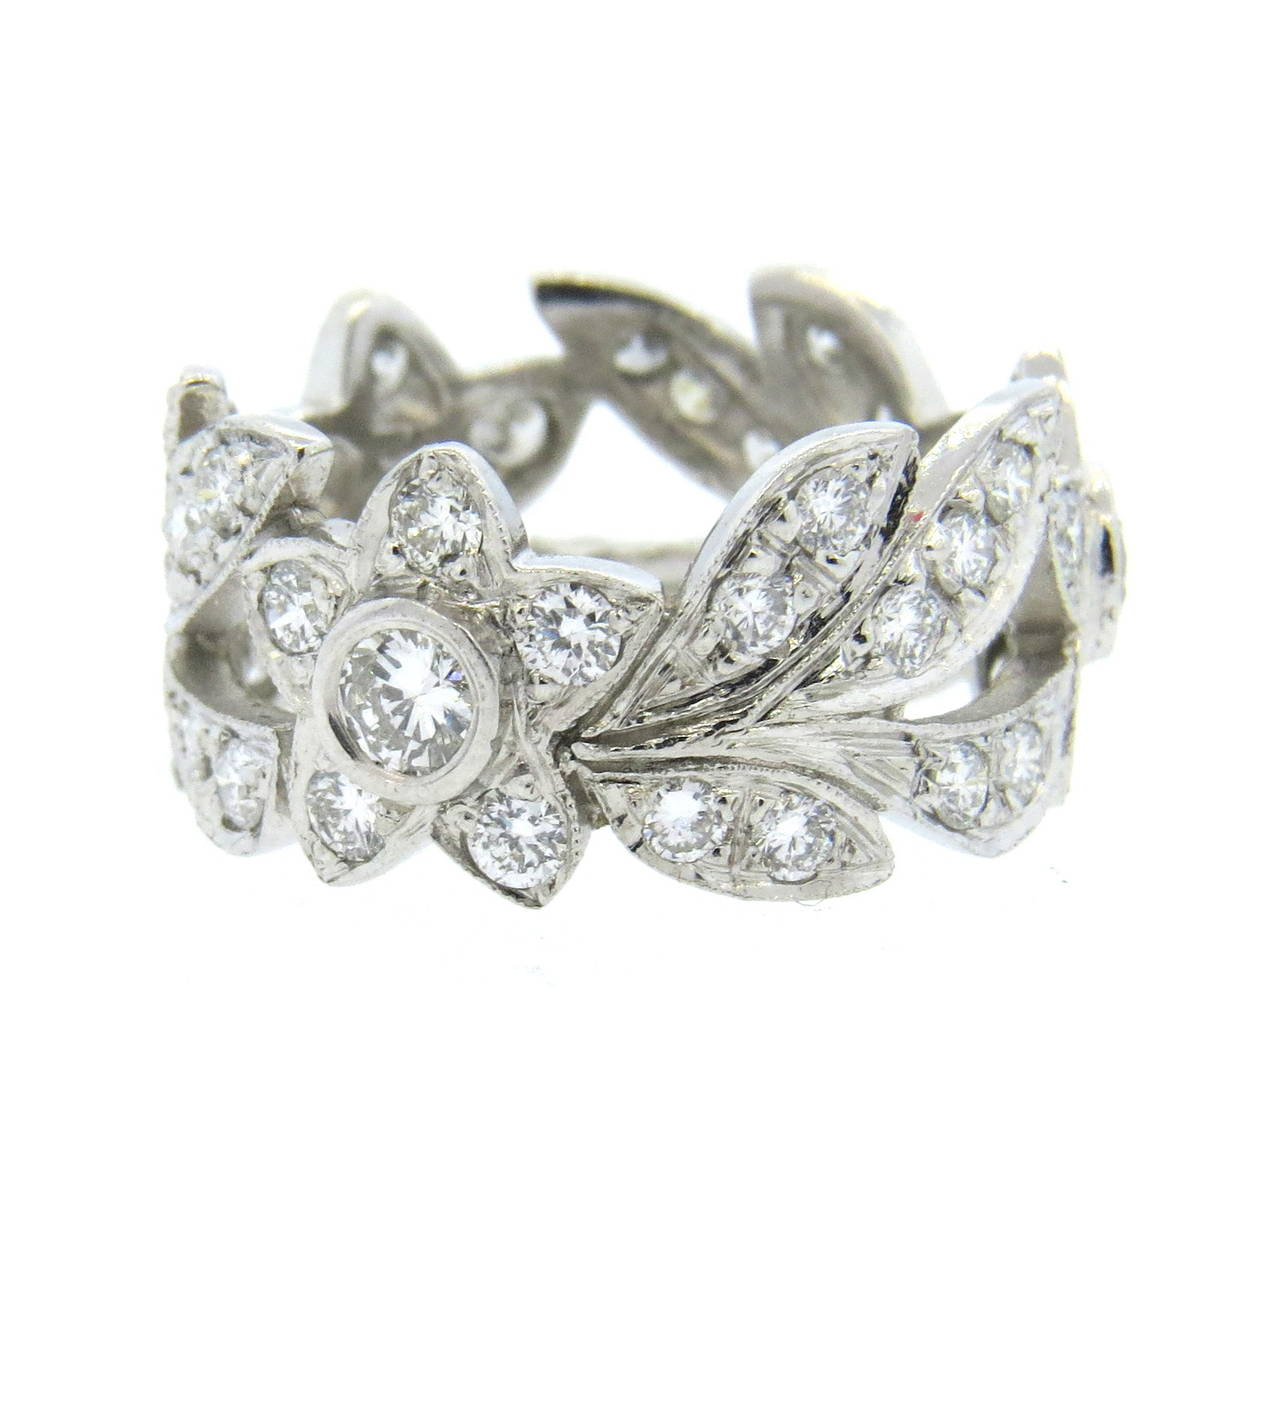 Diamond Platinum Flower And Leaf Motif Band Ring At 1stdibs. Swirl Necklace. Platinum Diamond Band Rings. Women's Jewelry. Charm Bangles. Automatic Chains. 10k Gold Necklace. Autism Bracelet. Jewellery Diamond